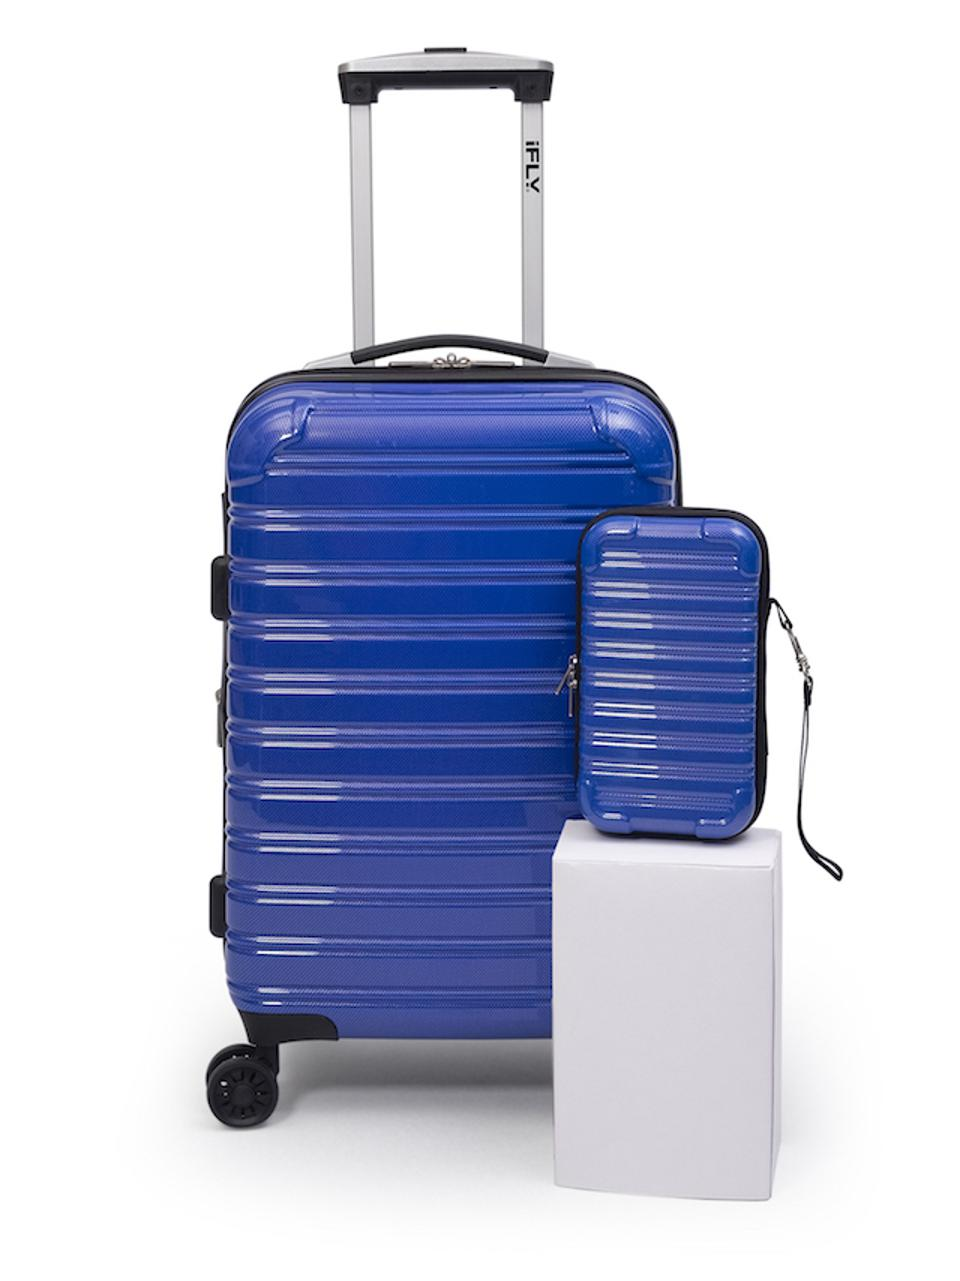 iFLY Luggage electric blue carry-on and mini case